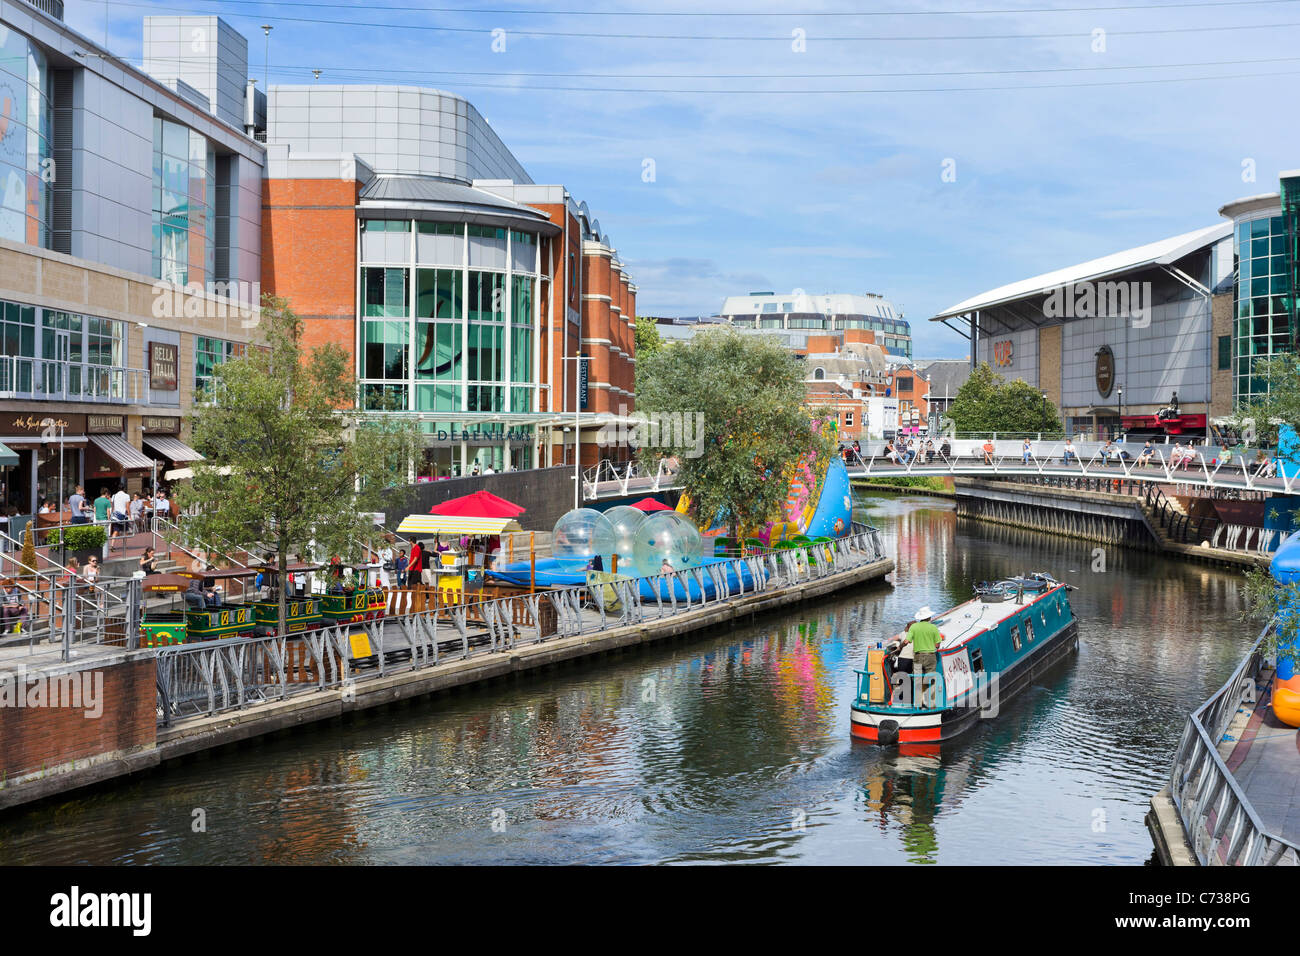 Shops and restaurants along the banks of the River Kennet in the Oracle Shopping Centre, Reading, Berkshire, England, - Stock Image